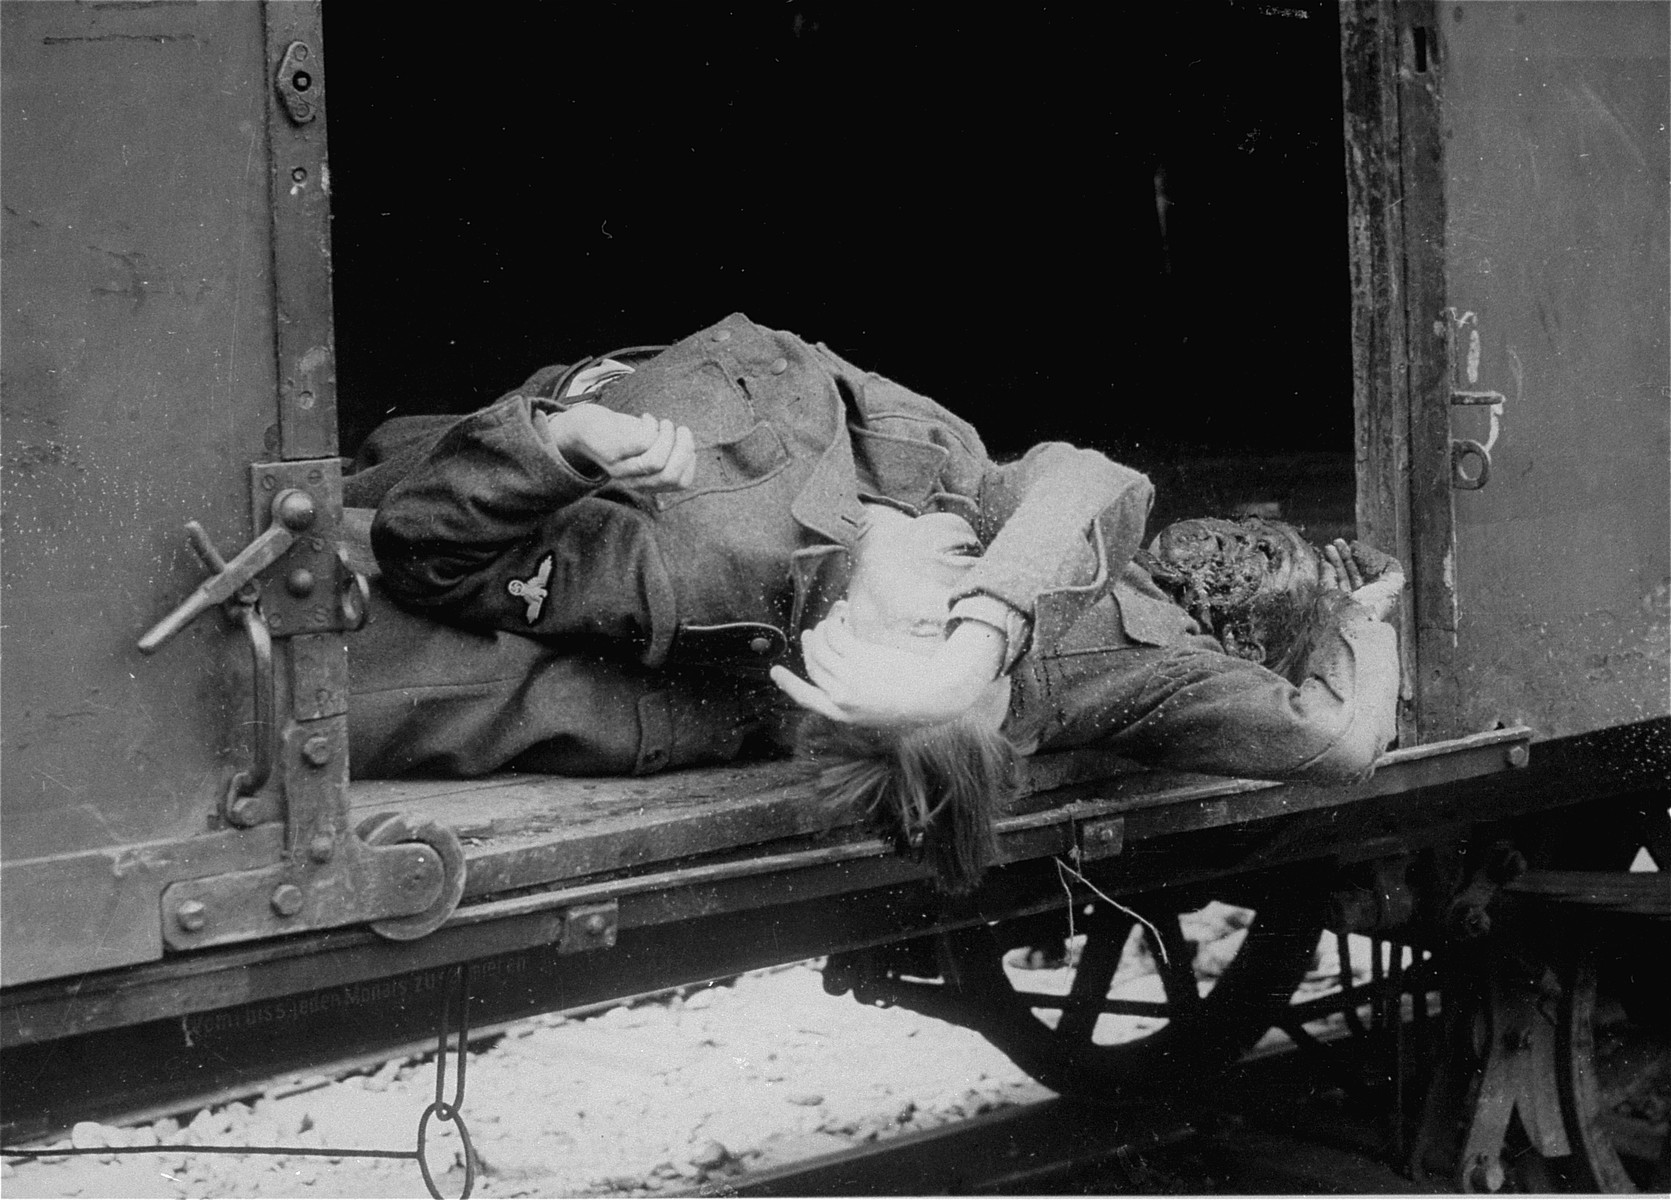 The bodies of two SS men who were killed by survivors.